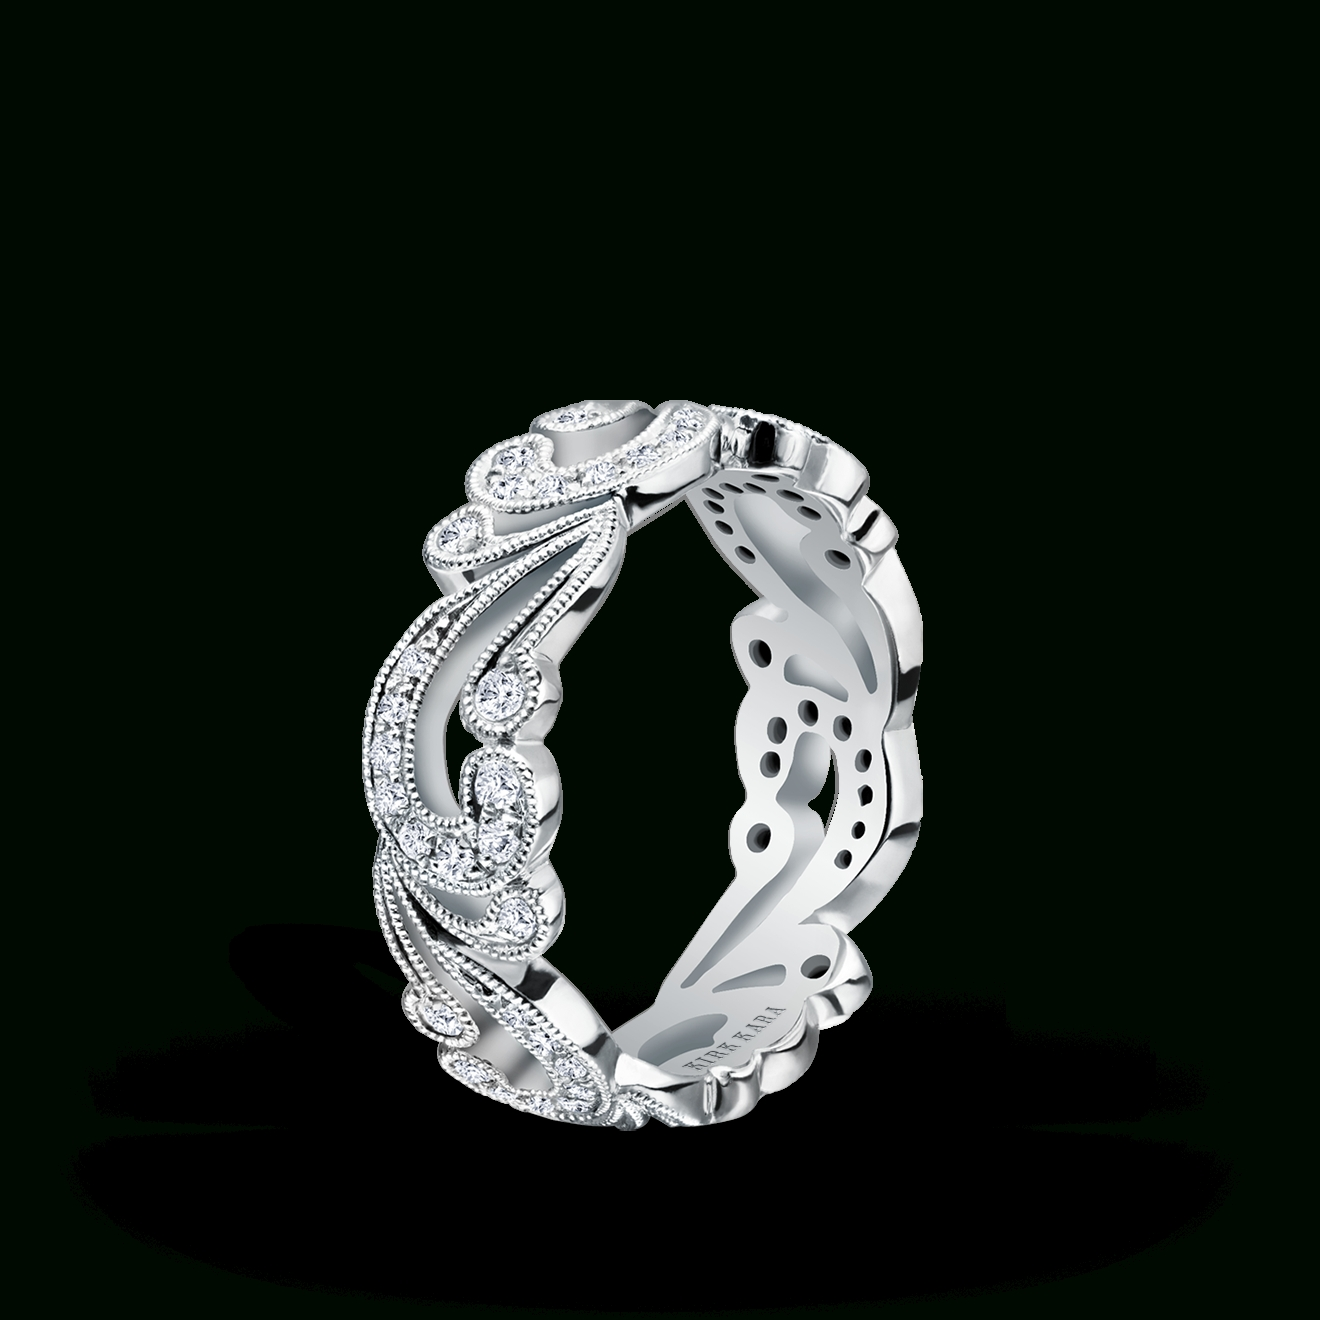 Designer Diamond Wedding & Anniversary Bands For Women | Kirk Kara Intended For Newest Anniversary Rings Designs (Gallery 3 of 25)